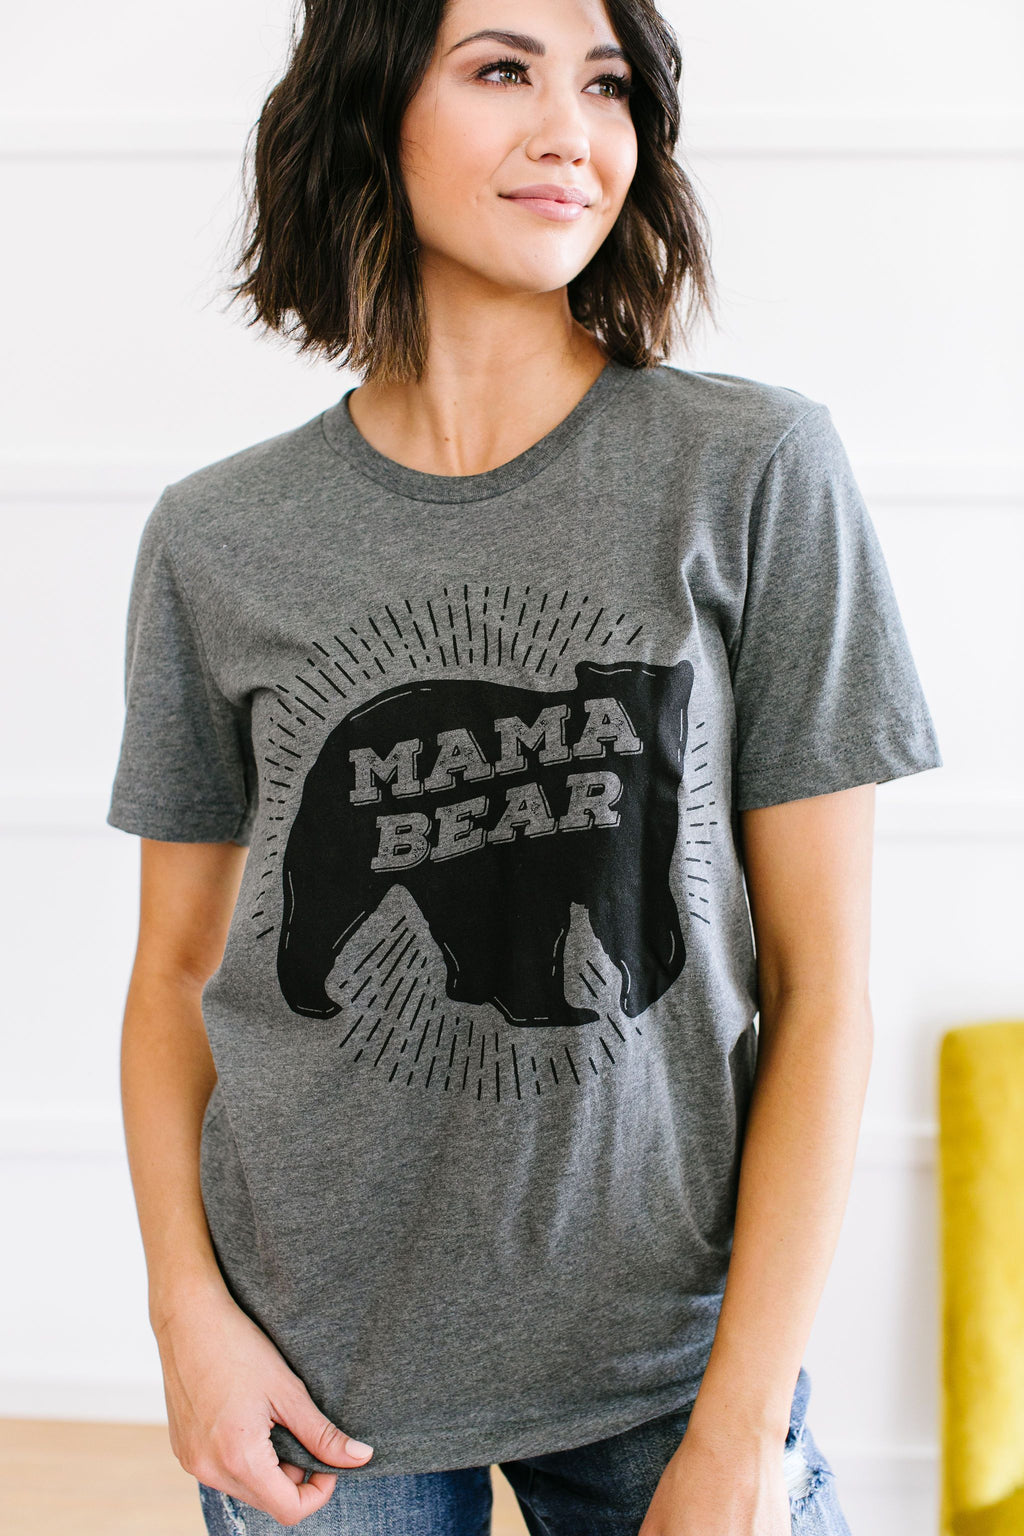 Mama Bear Graphic Tee-2XL, 3XL, 5-1-2020, Group A, Group B, Group C, Group D, Large, Medium, Plus, Small, Tops, XL, XS-Womens Artisan USA American Made Clothing Accessories